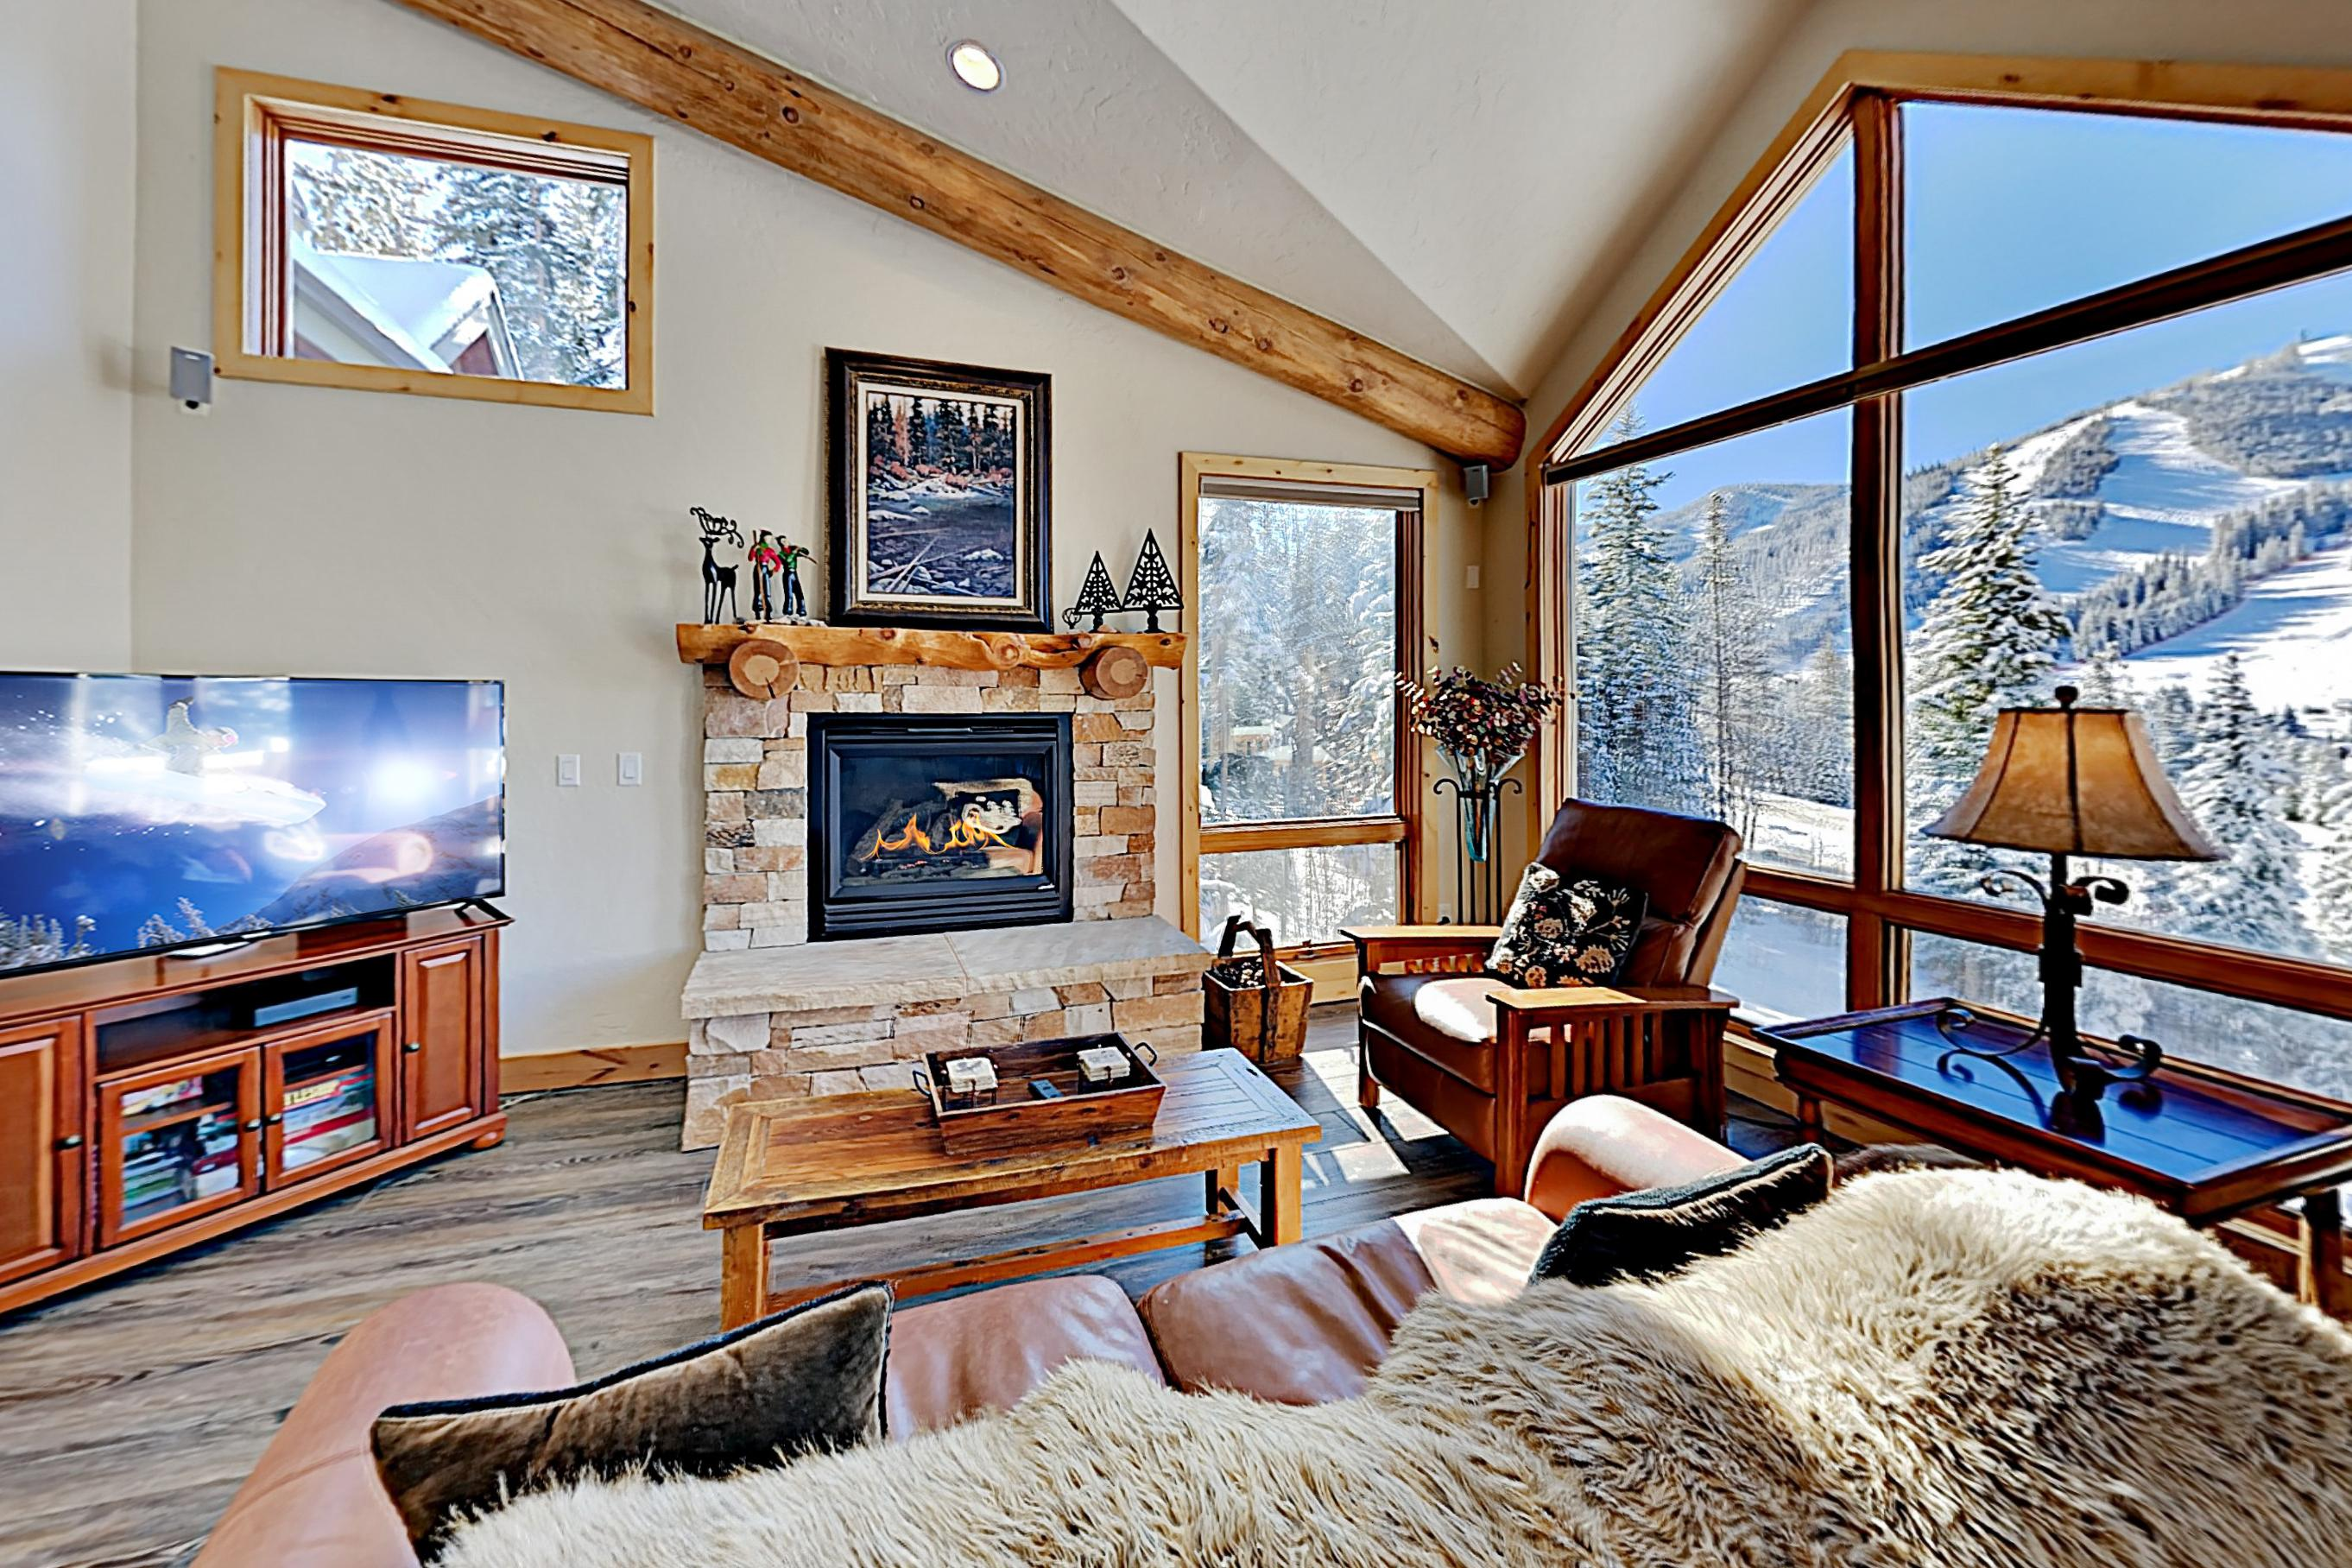 Property Image 1 - Mountain-Chic Townhome with Hot Tub near Resort Base